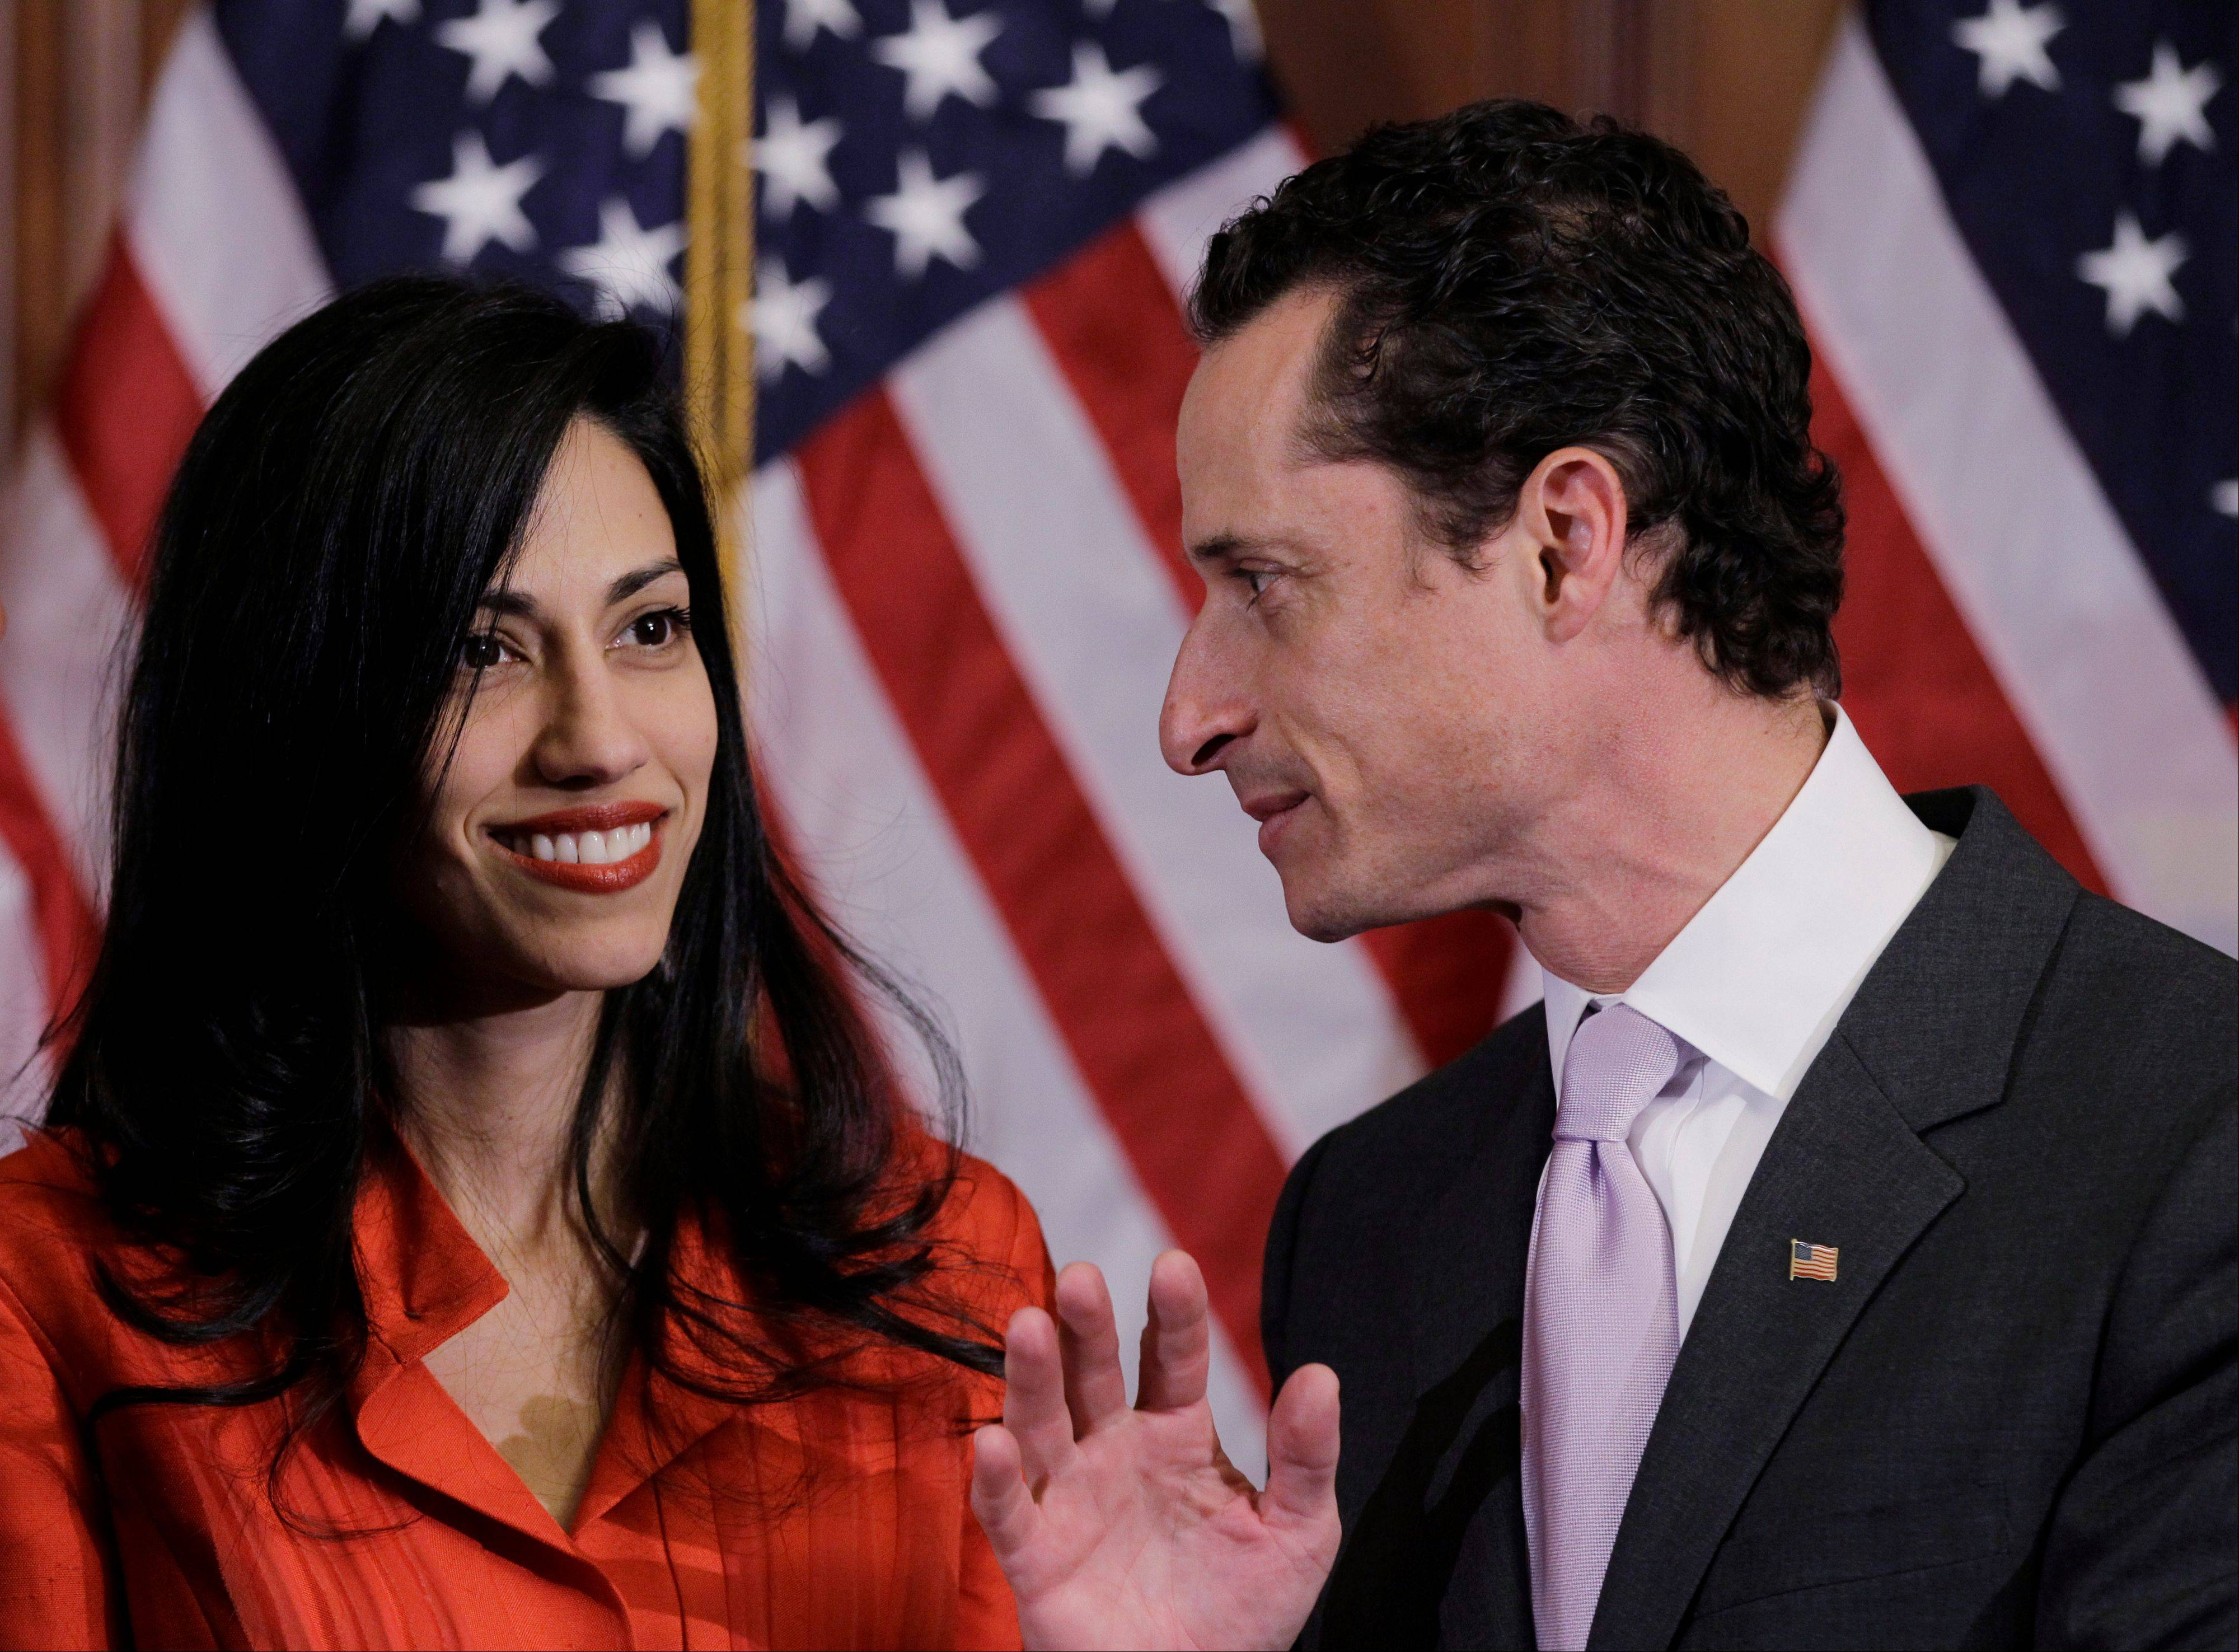 Anthony Weiner and his wife, Huma Abedin. When Abedin's name and face first started appearing in the media six years ago, lots of